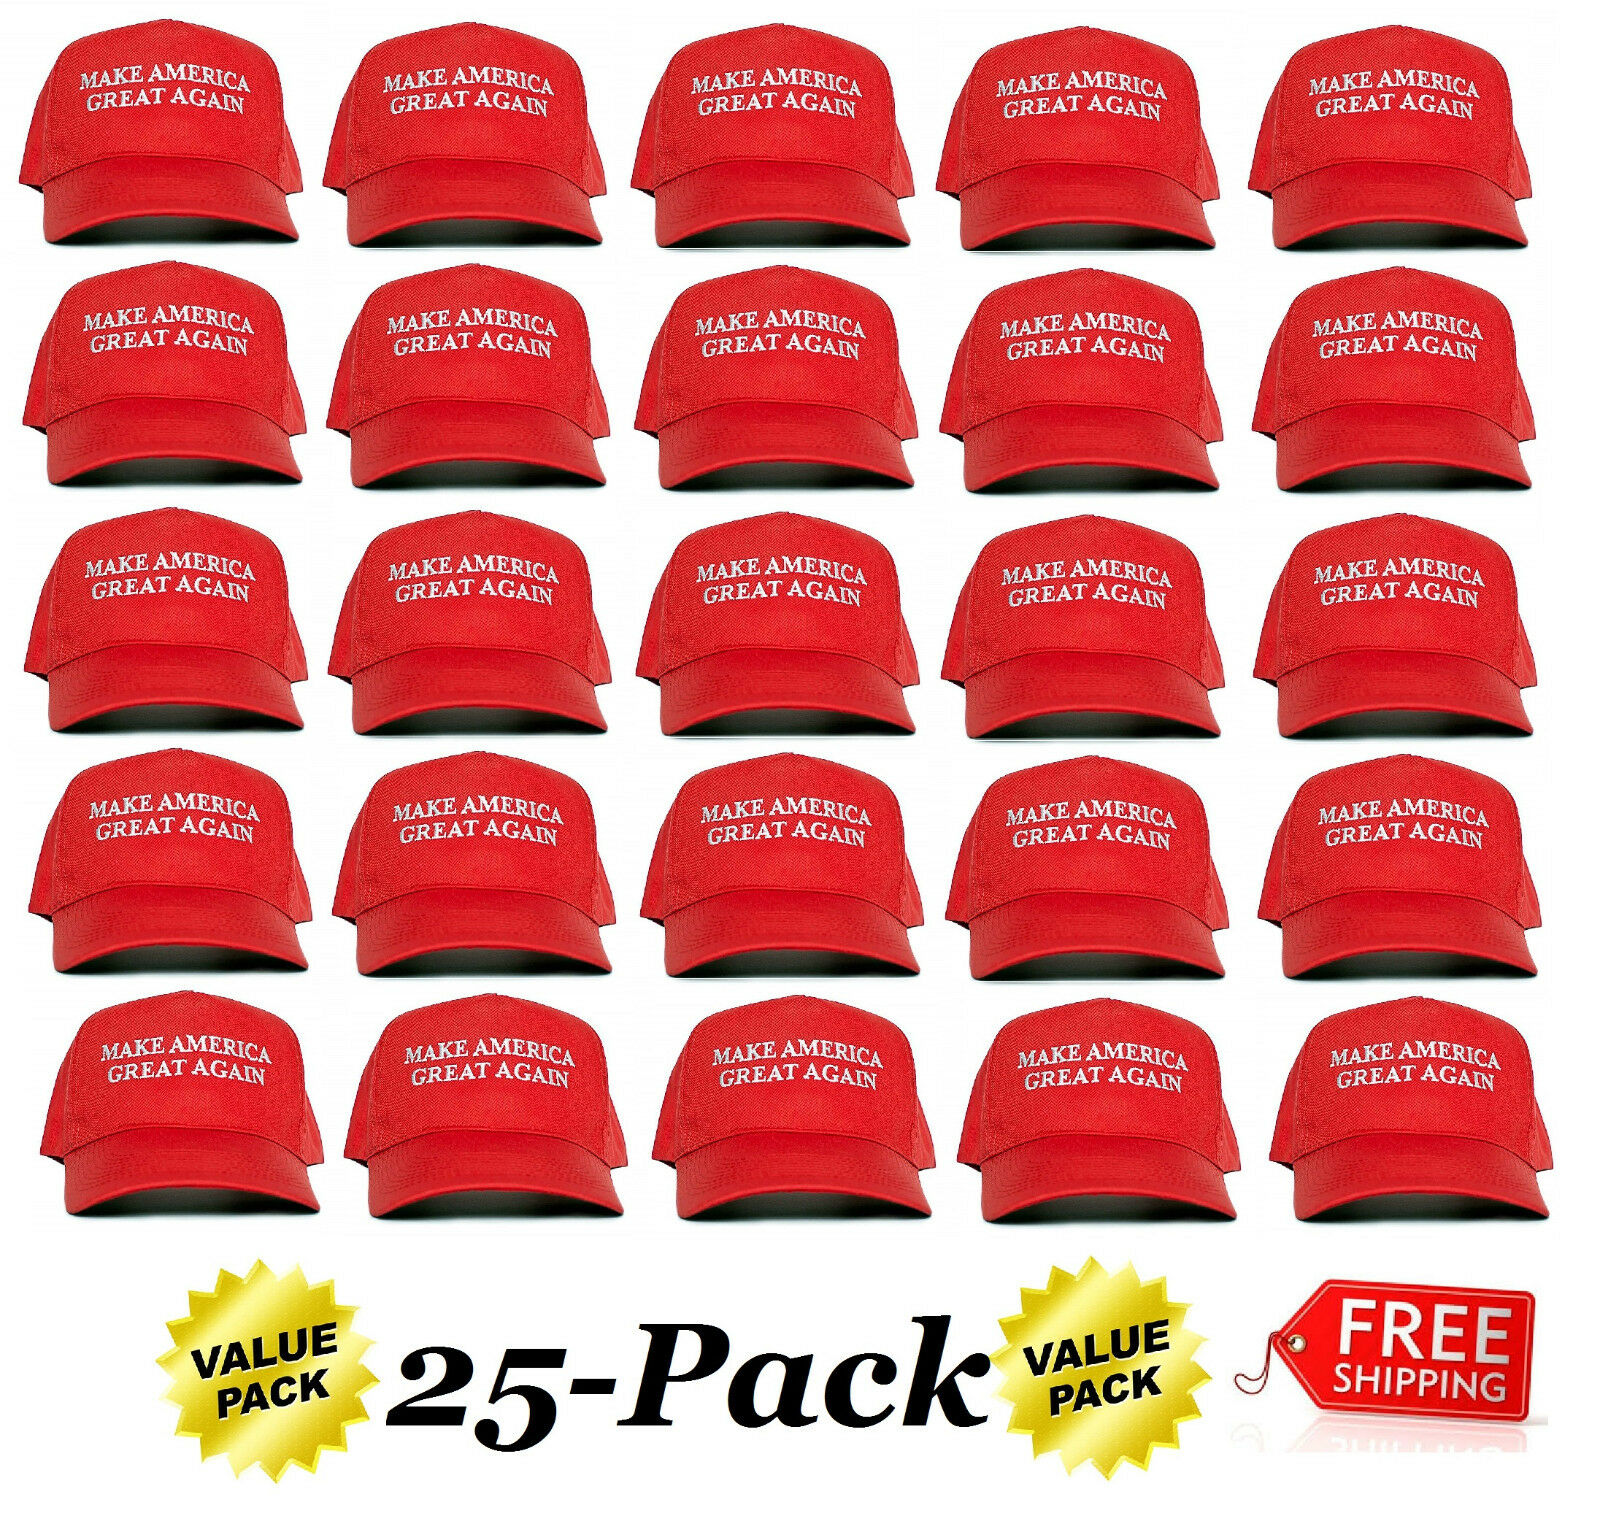 "US SELLER! Ultimate 25-Pack 'Make America Great Again"" Trump MAGA Red Hats Clothing, Shoes & Accessories"